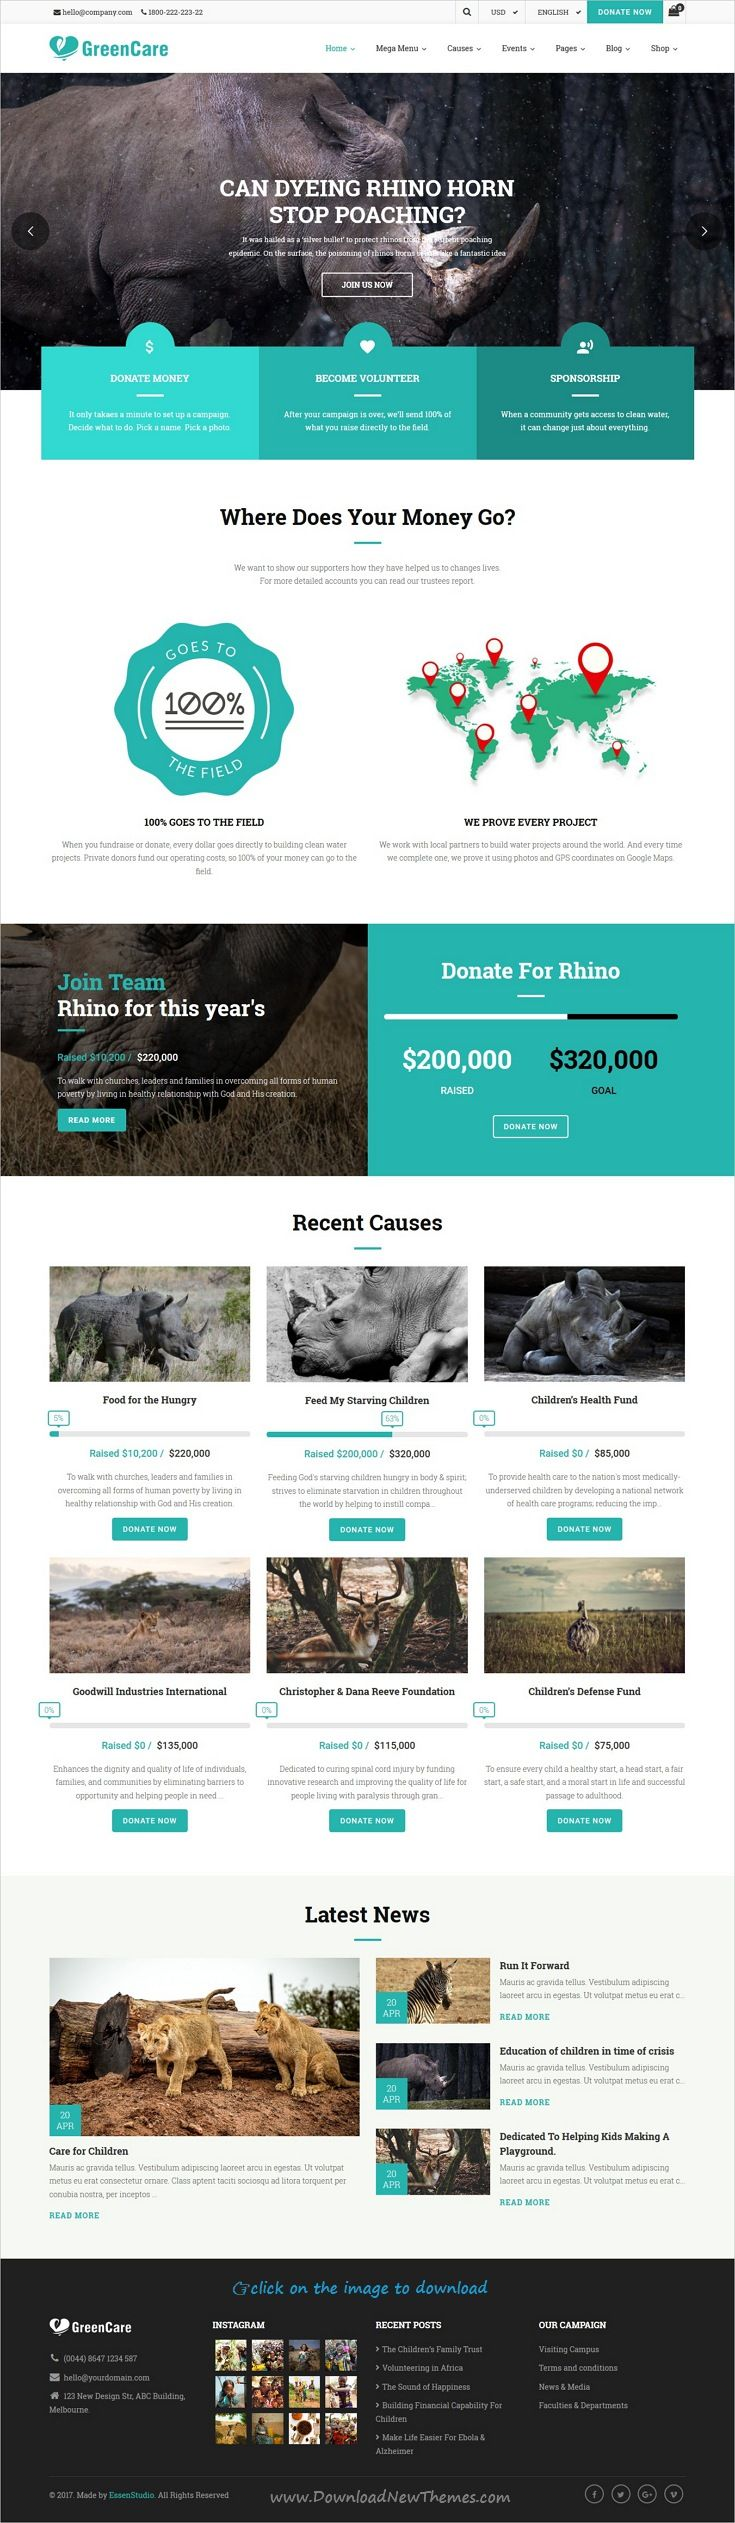 GreenCare is clean and modern design all-in-one responsive #WordPress theme for #Charity #stoppoaching and nonprofit organizations website with 6 niche homepage layouts to download click on image.